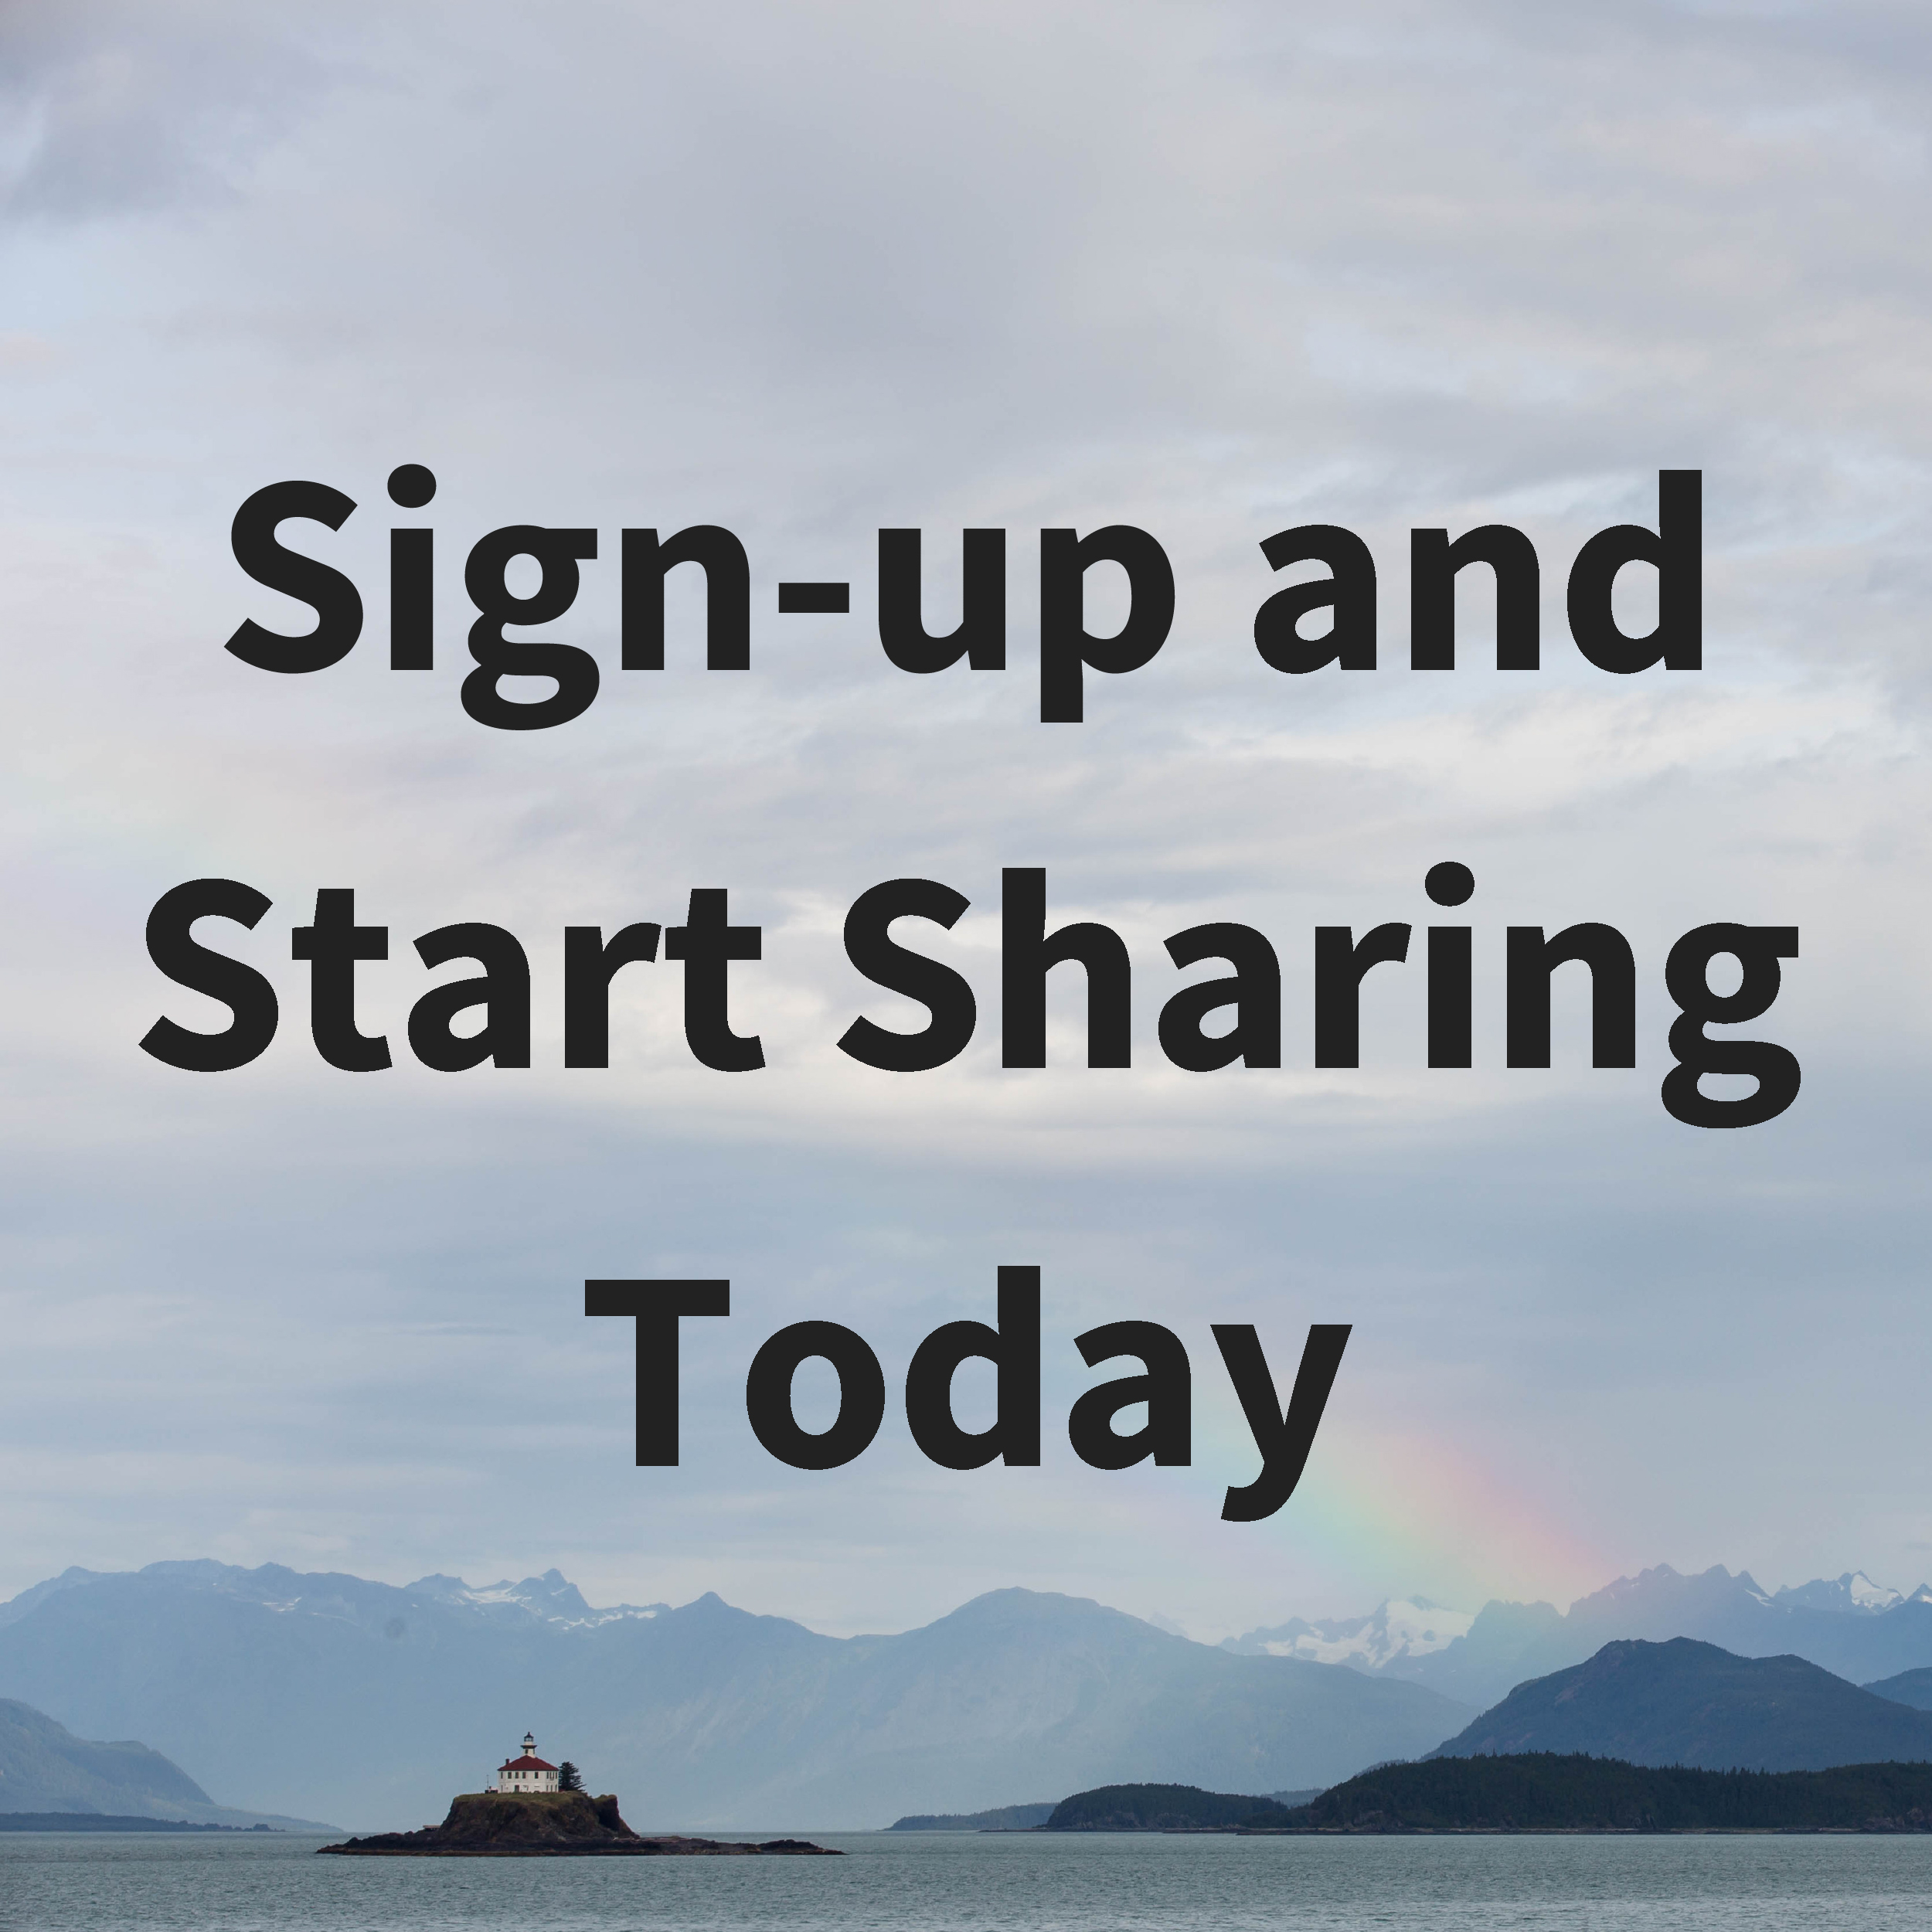 Sign-up_and_Start_Sharing_Today.jpg